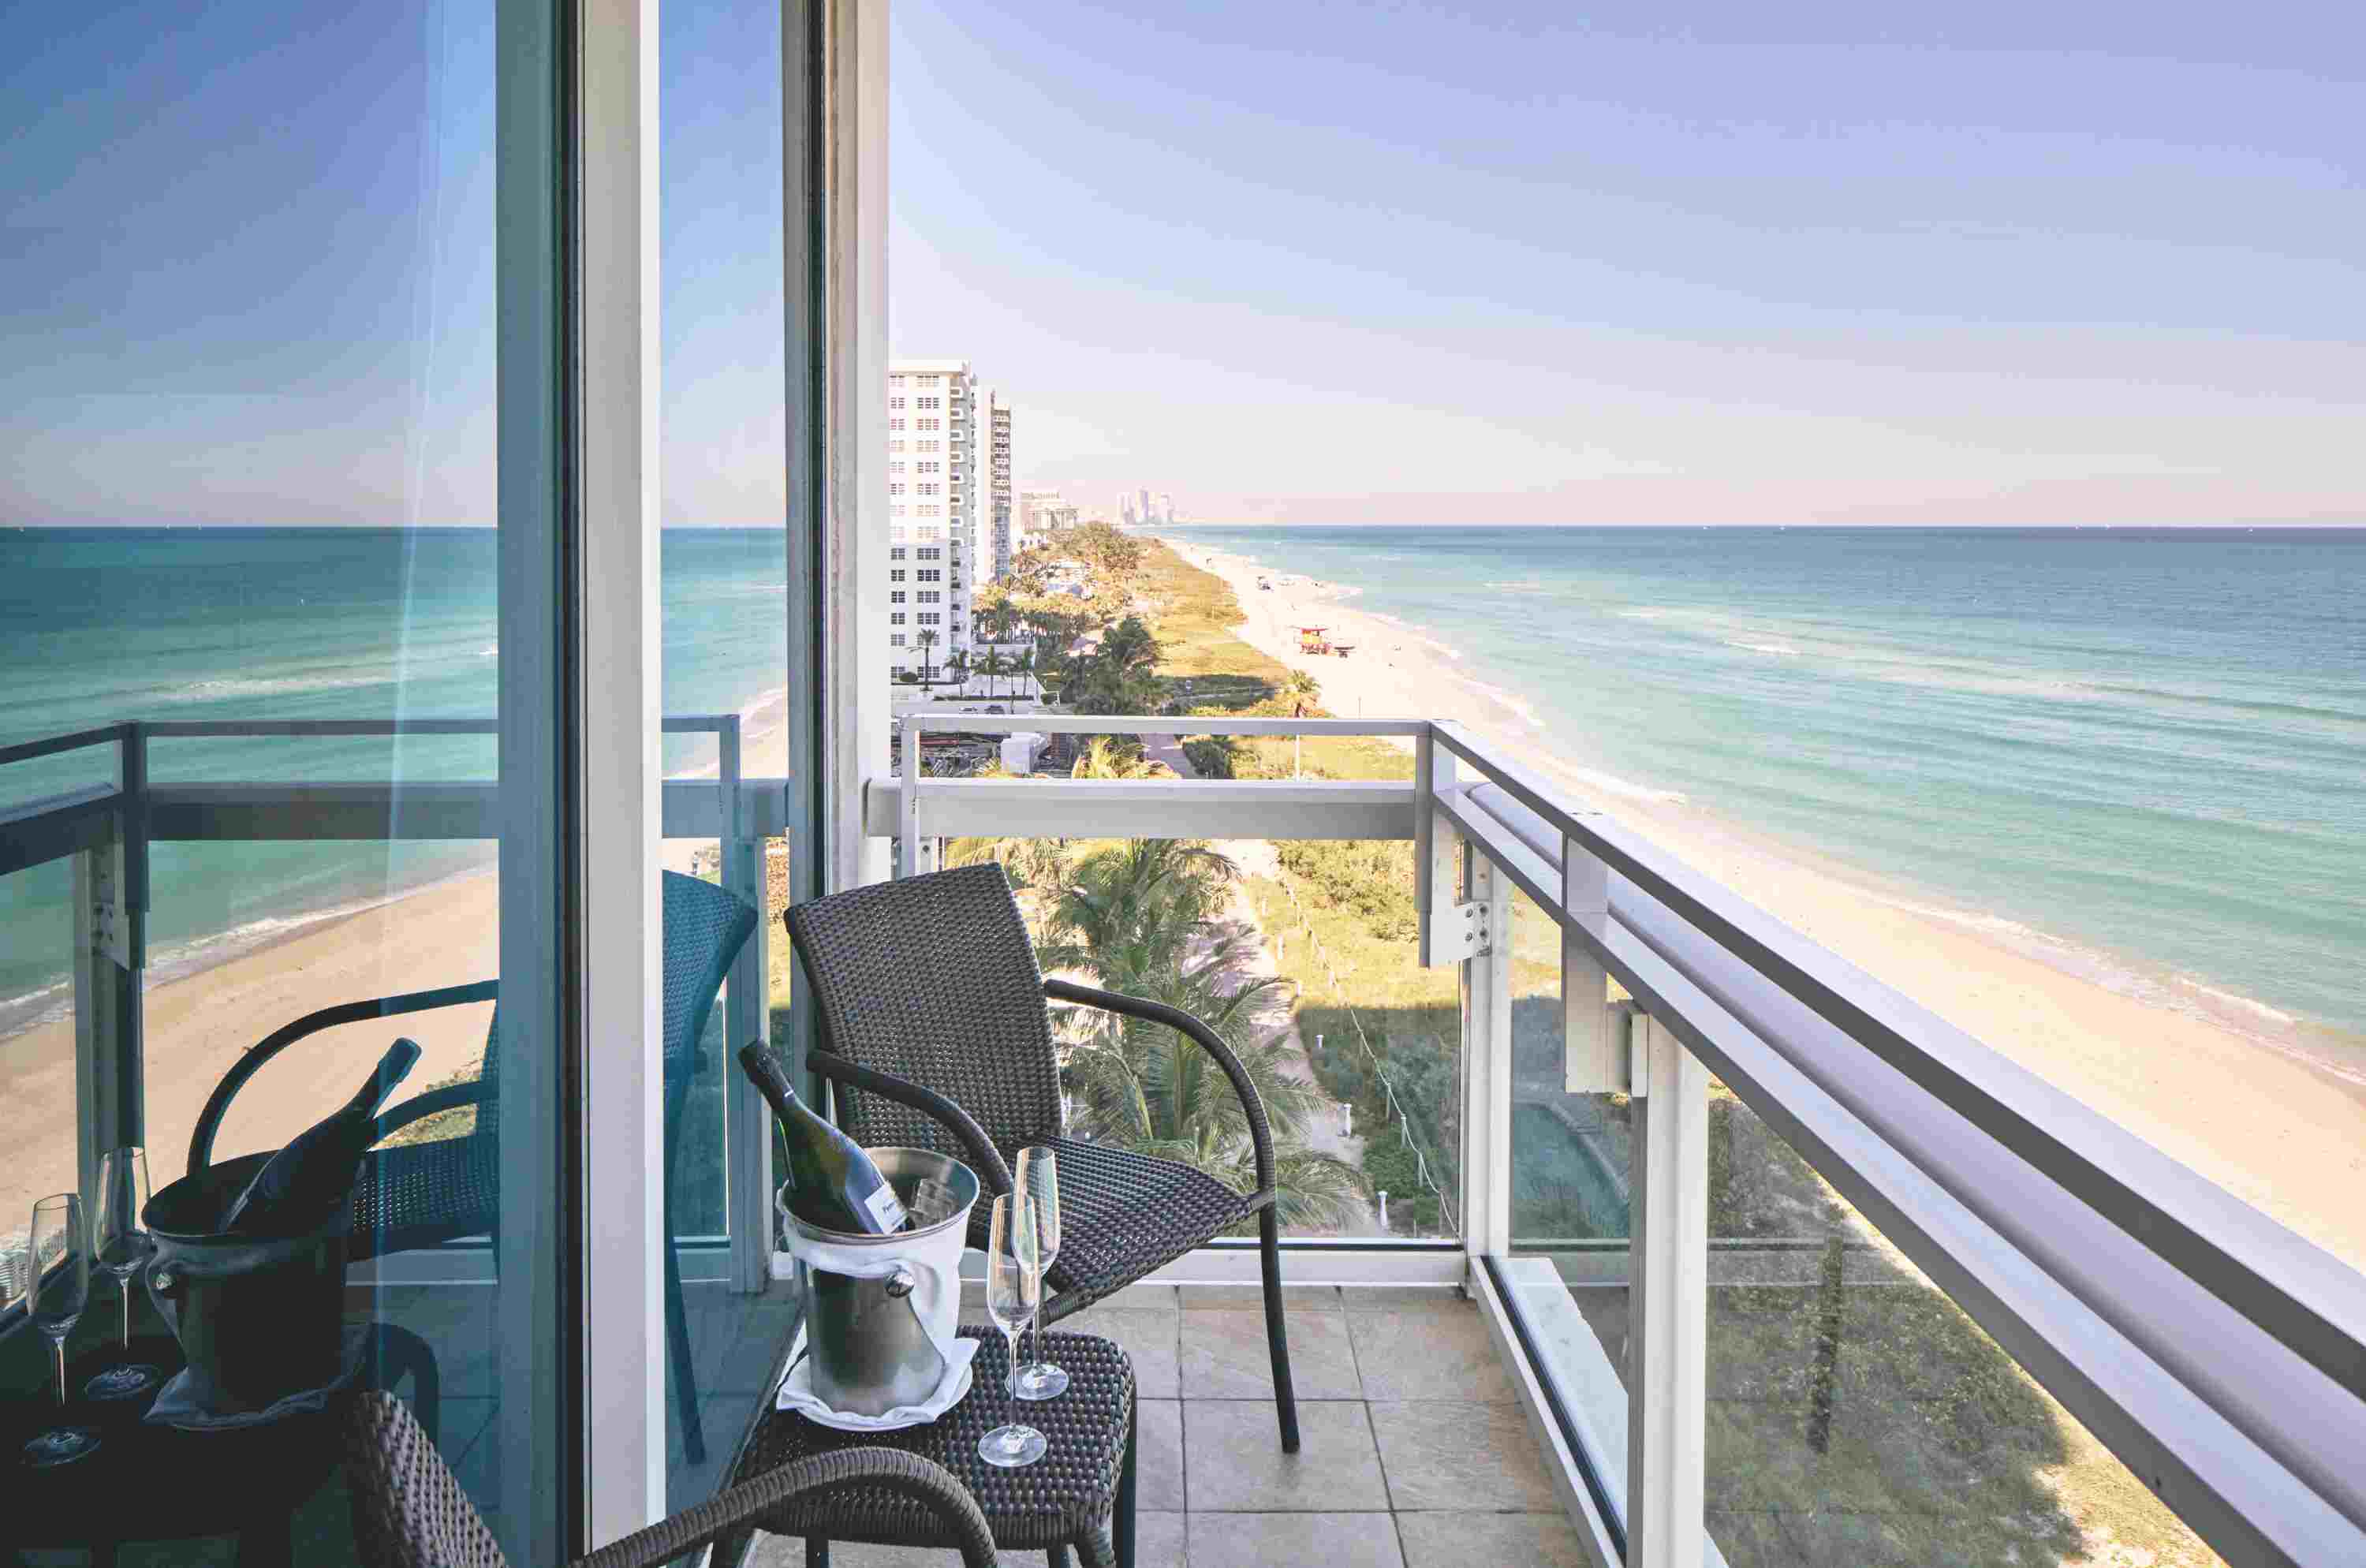 miami eight east stylish travel garden in options cheap gardens story hotels